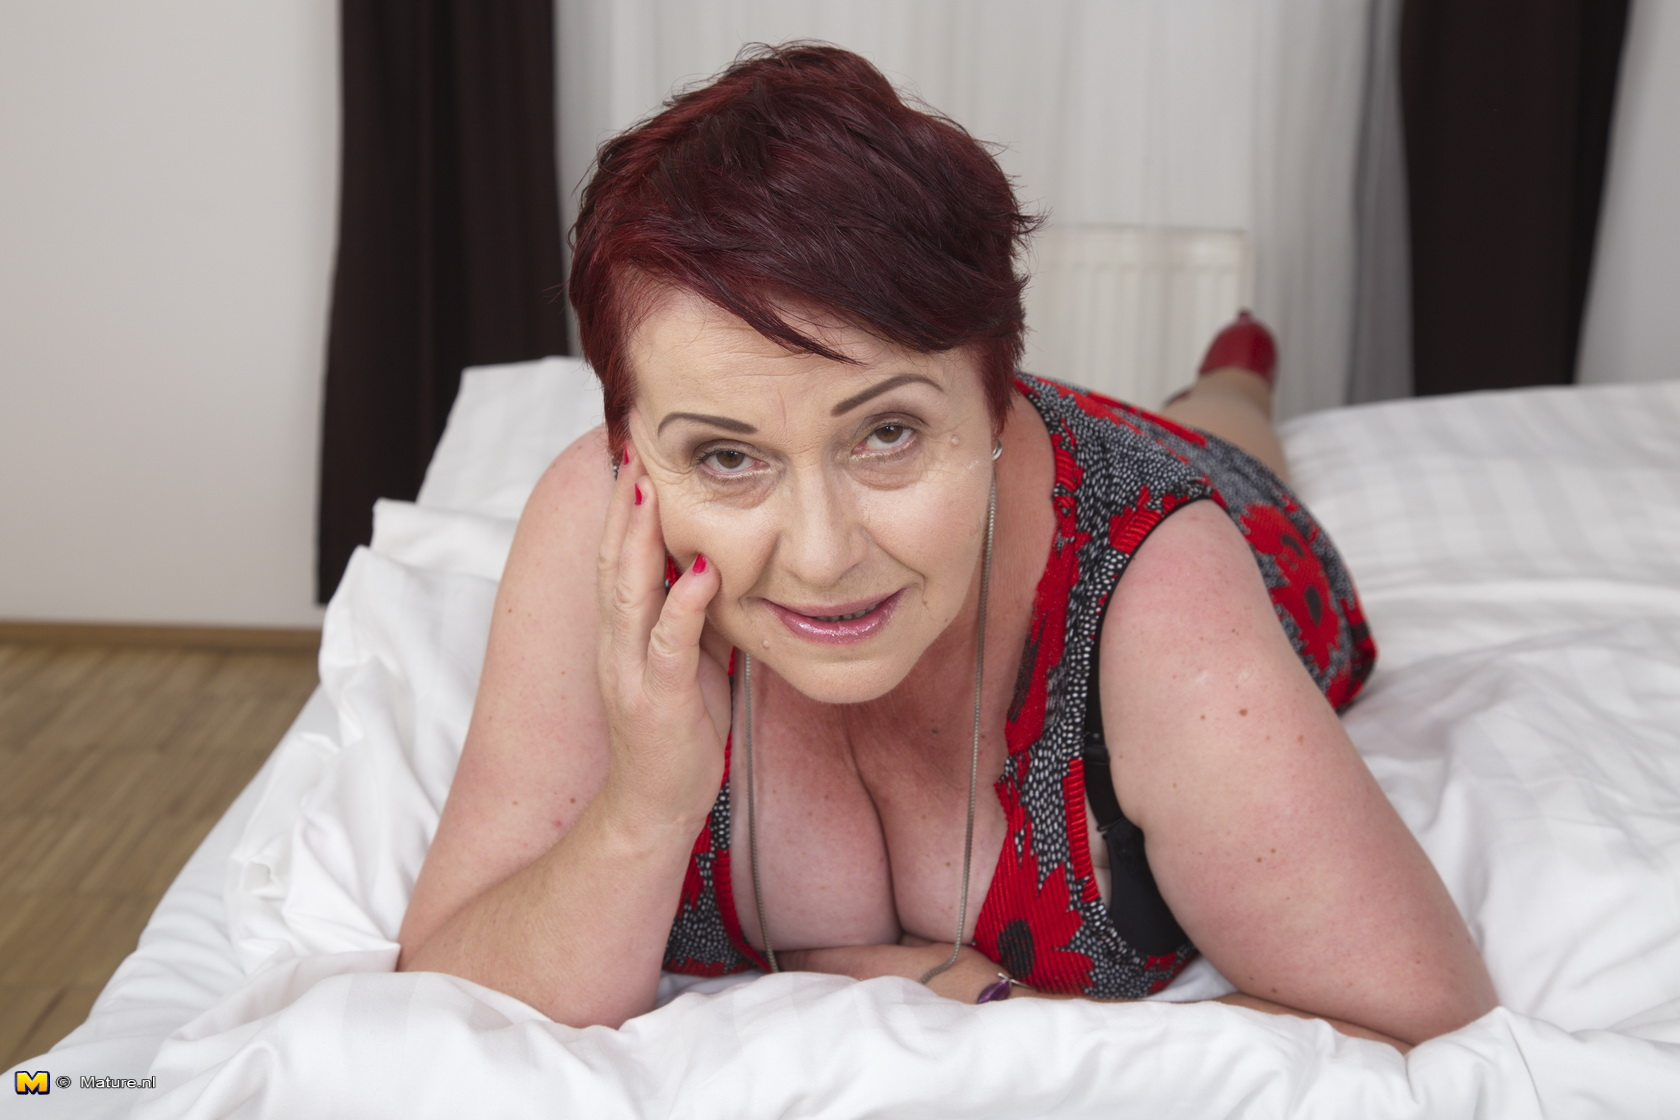 This super-naughty furry grandmother gets it in POV style